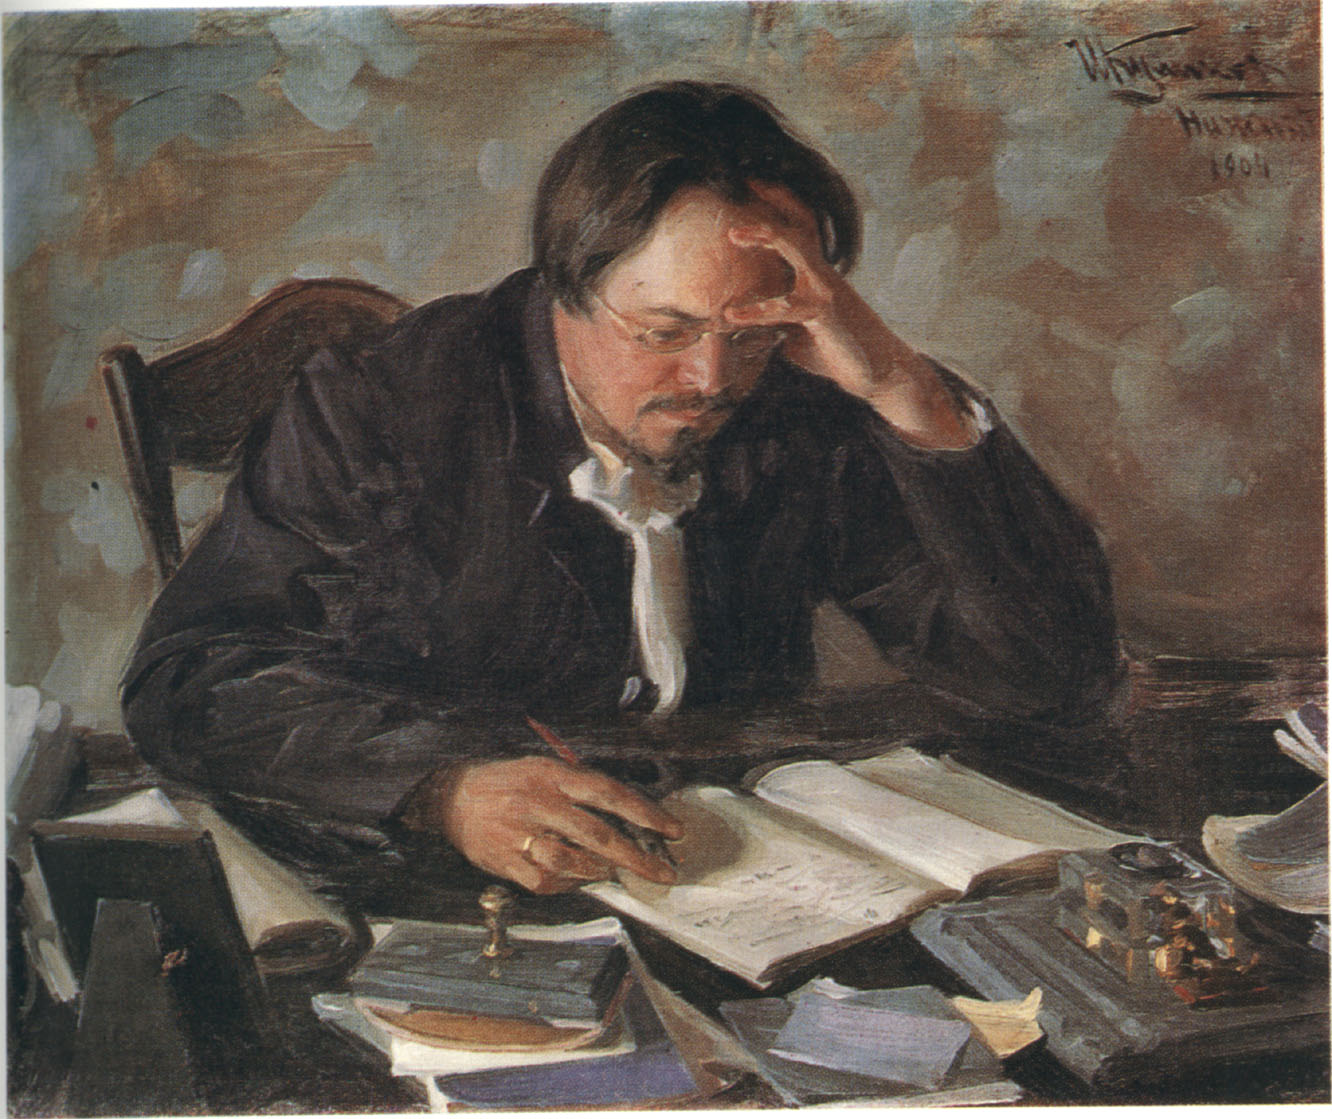 Painting of Russian writer Evgeny Chirikov by Ivan Kulikov, 1904.